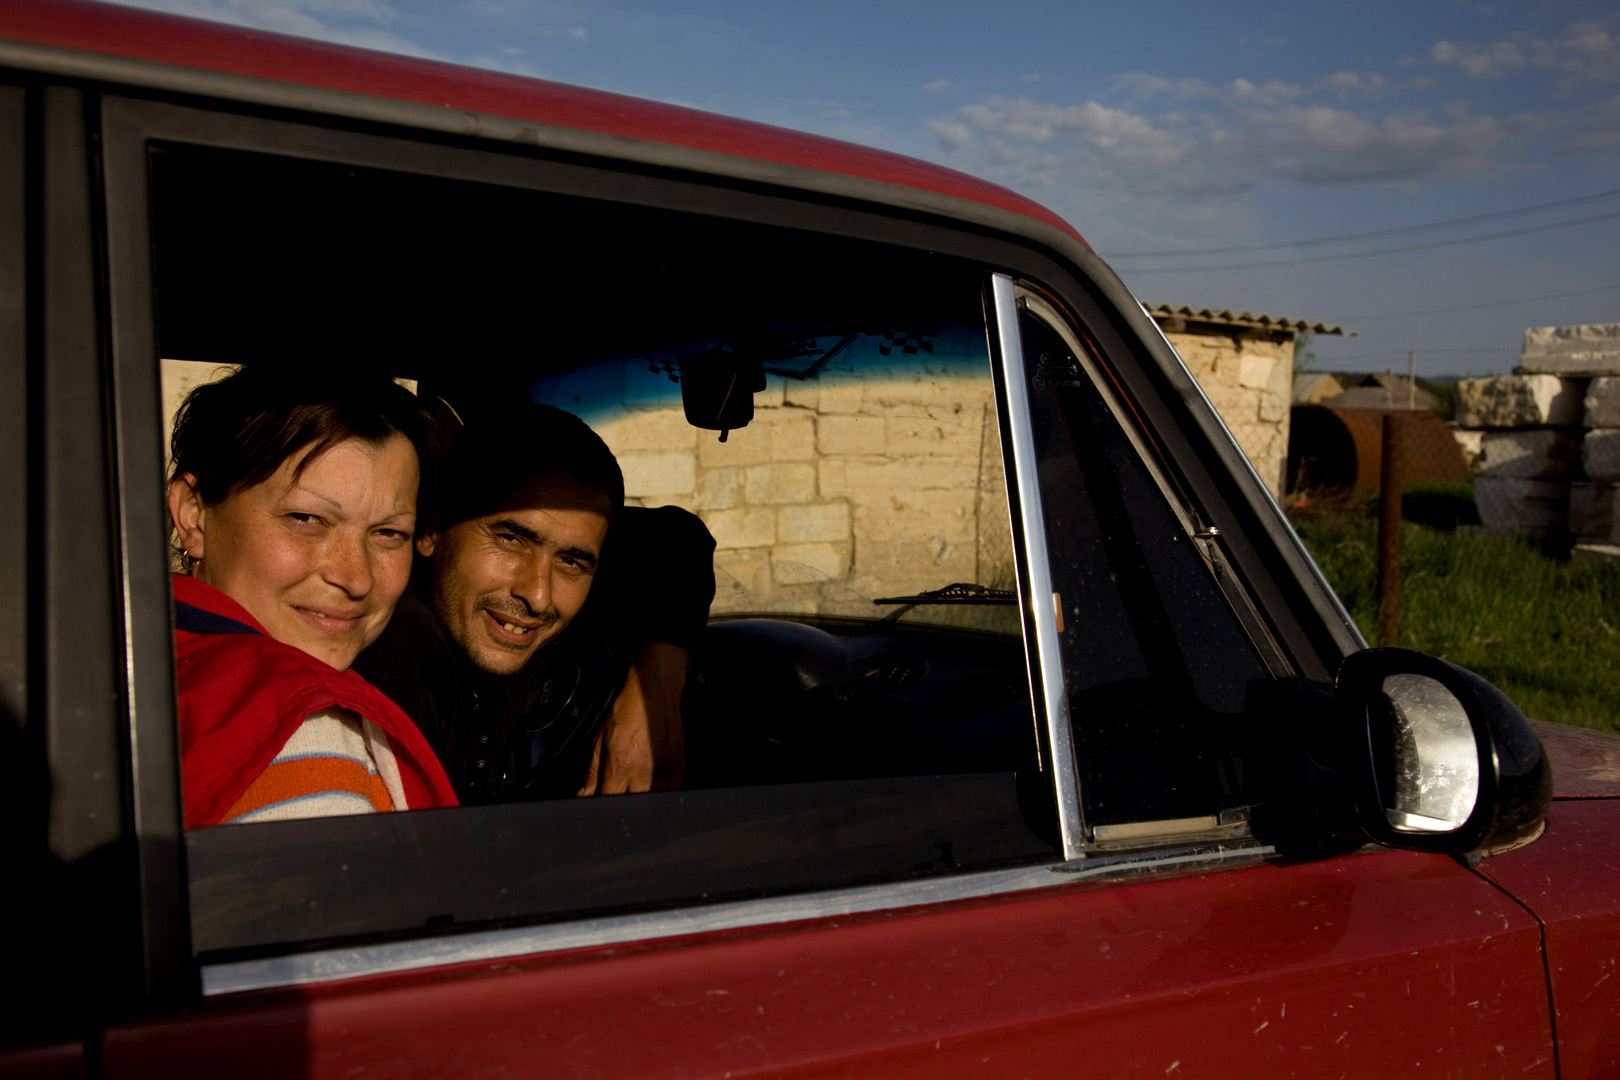 Behind this young Tatar couple are the new settlements in Sarysu, where the Tatar community has resorted to building temporary structures on state land in an attempt to reclaim ownership.  Sarysu, Crimea